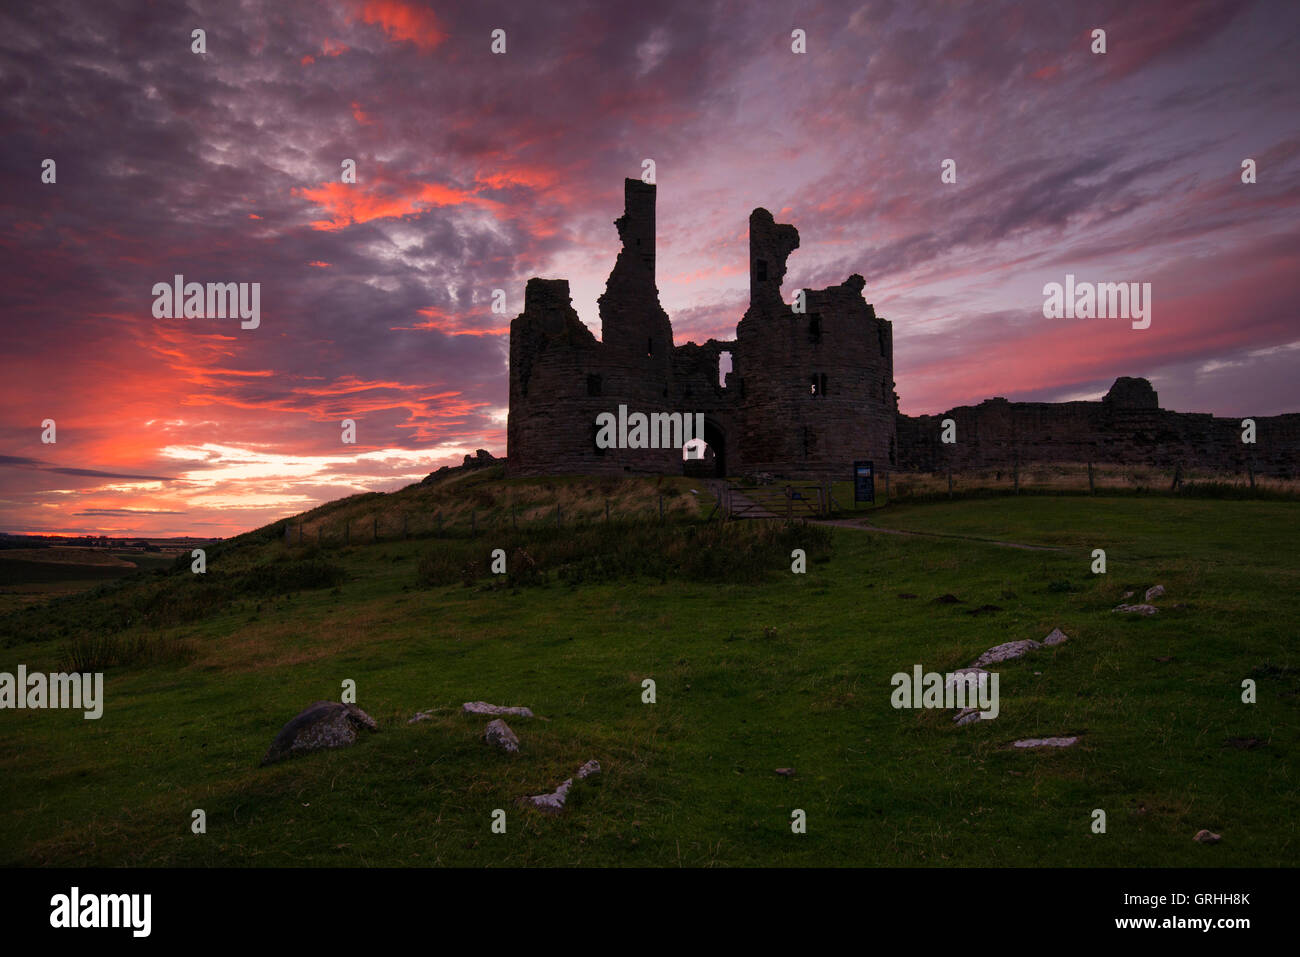 The foreboding ruins of Dunstanburgh Castle at sunset on the coast of Northumberland, England UK Stock Photo